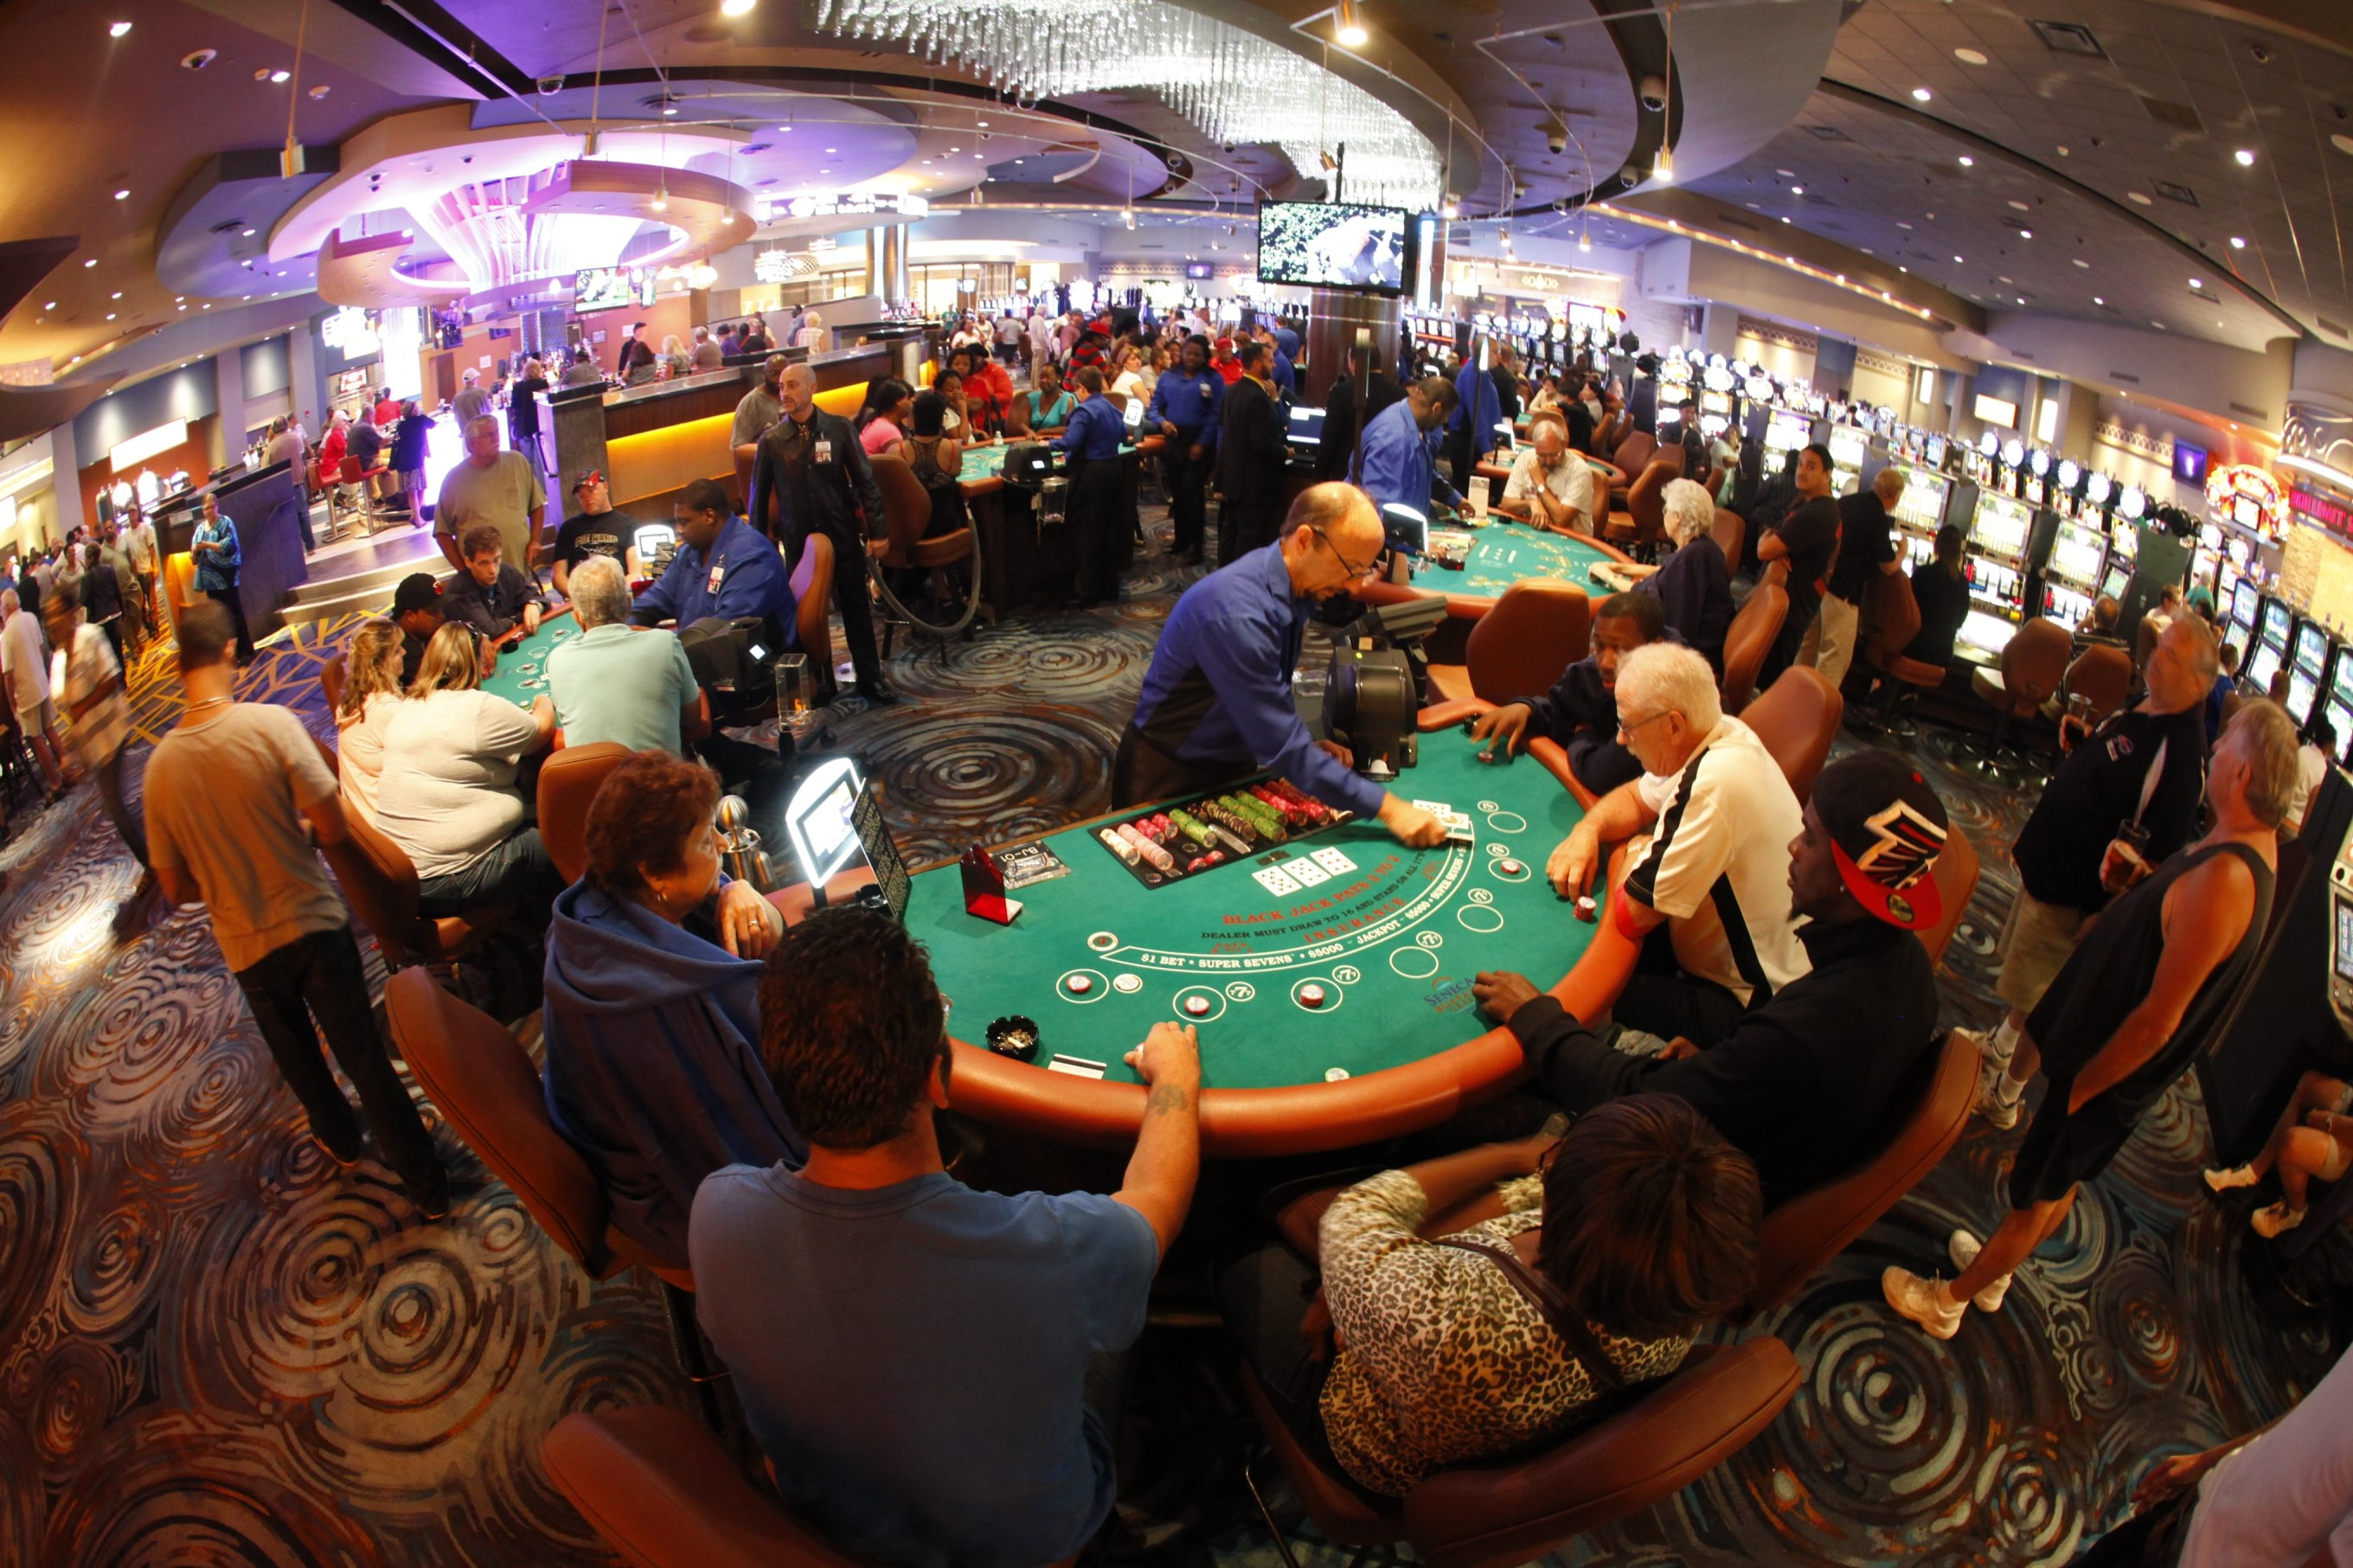 The new Seneca Buffalo Creek Casino was packed Tuesday night at the site's grand opening, including around the blackjack tables. Although it is smaller than the original plan, those attending the event didn't seem to have any complaints.